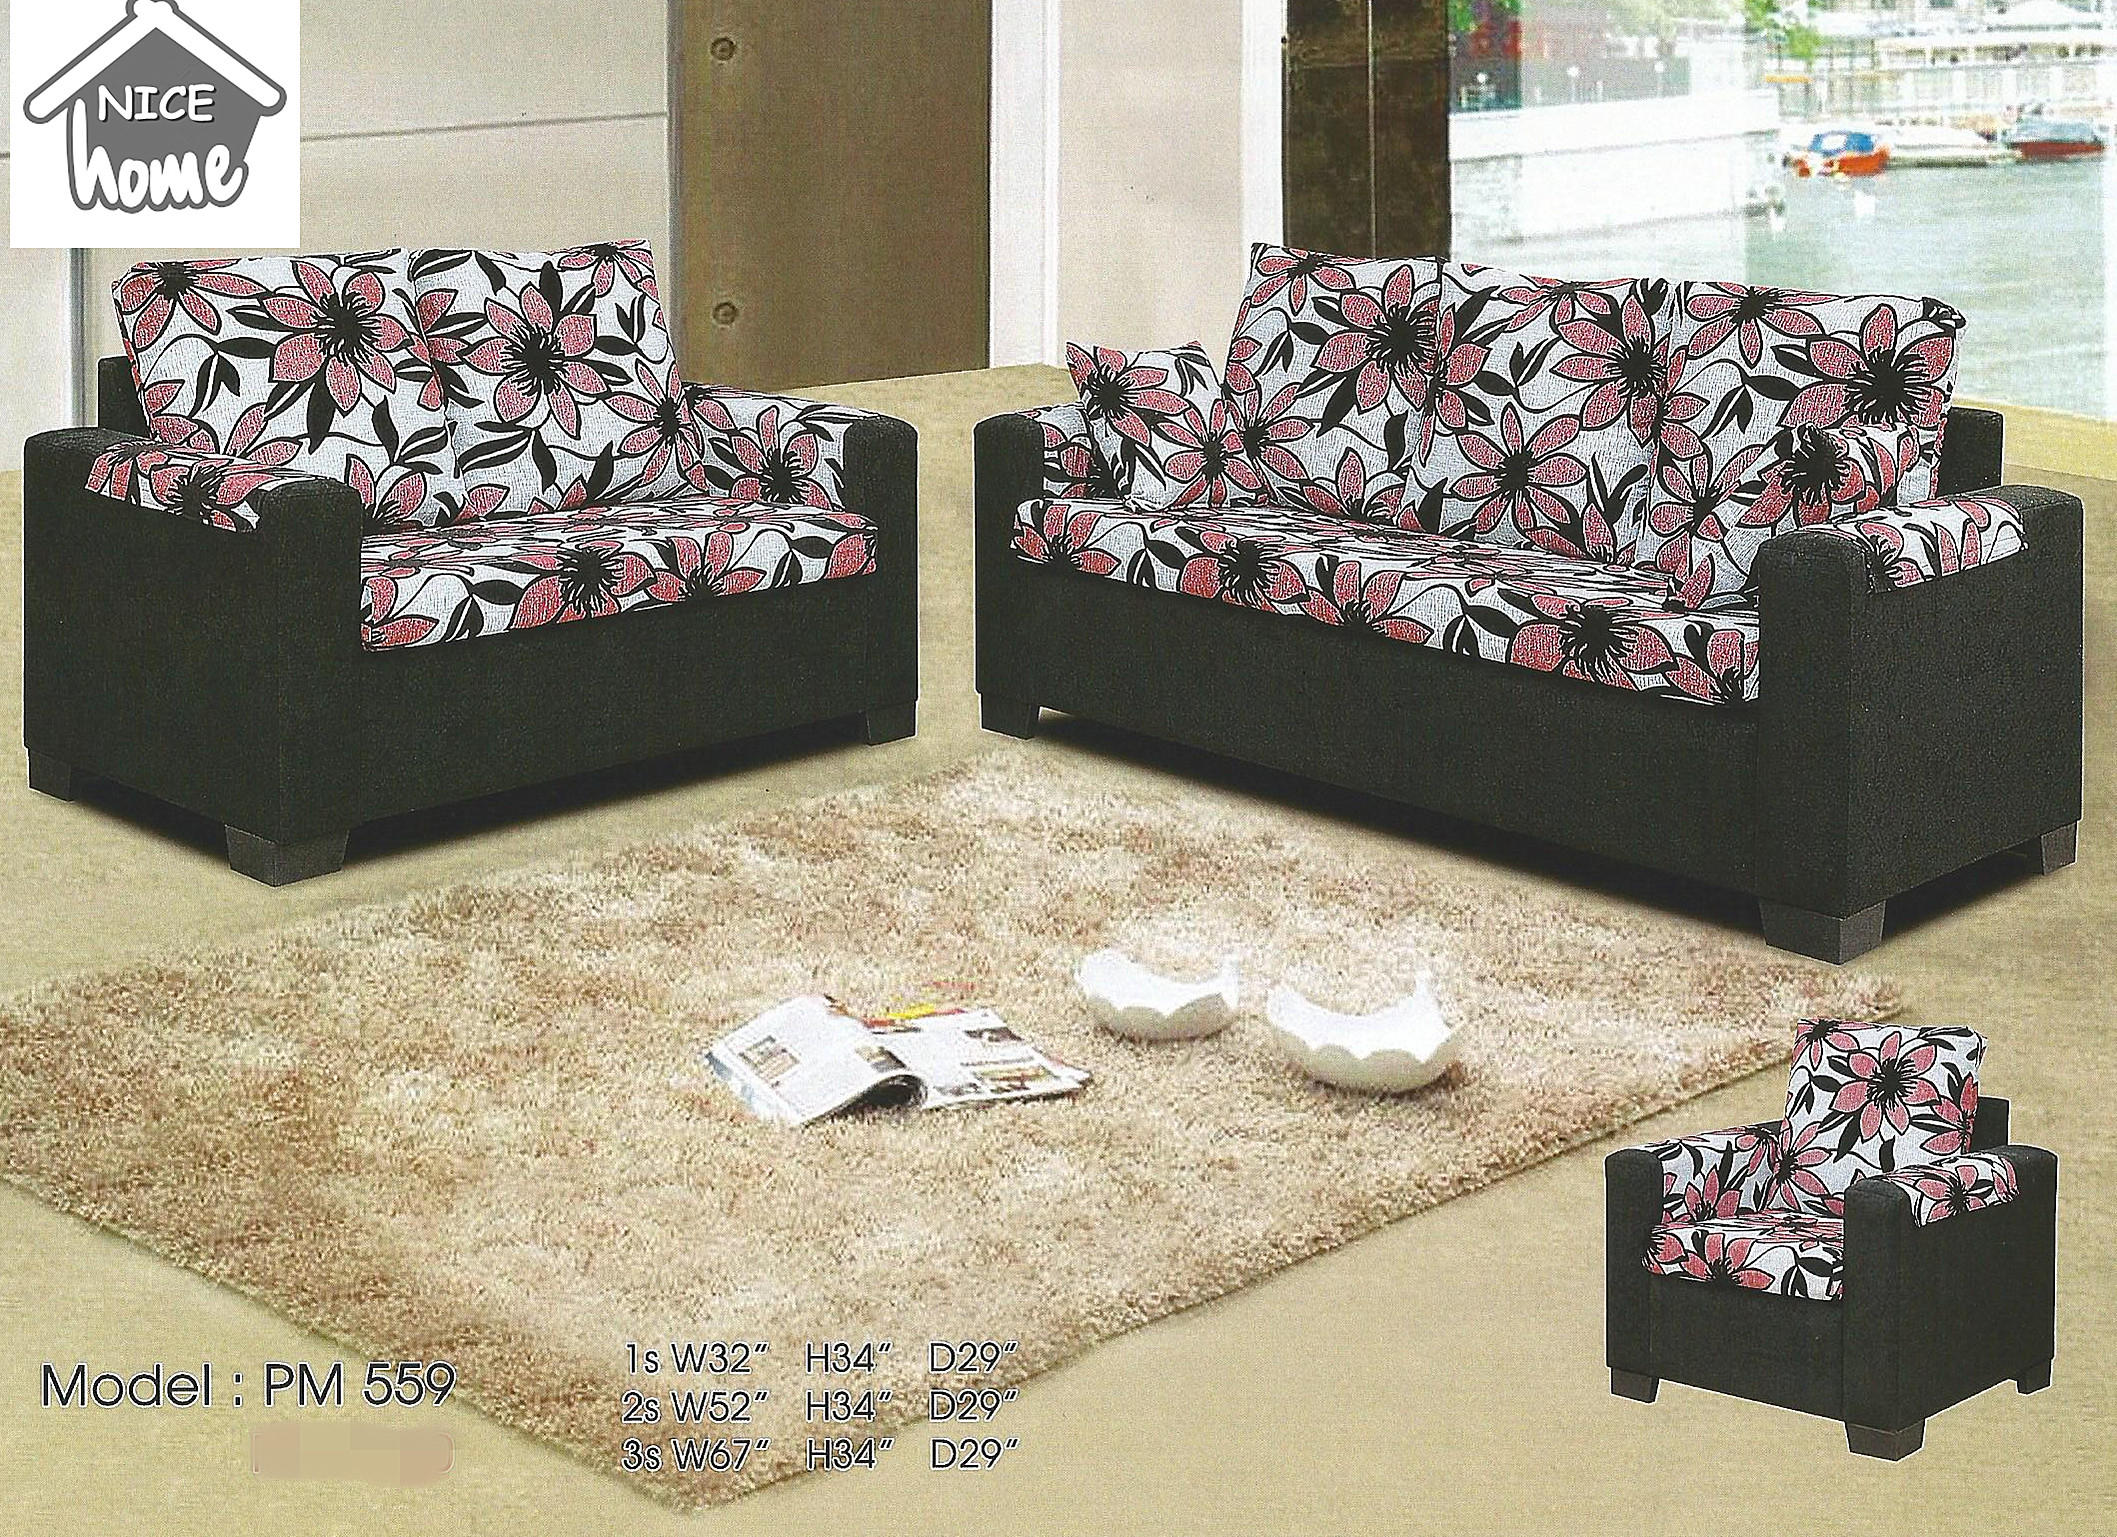 Sofa Set Ansuran Bulanan Harga Bulanan Rendah 559 Home Furniture Furniture On Carousell